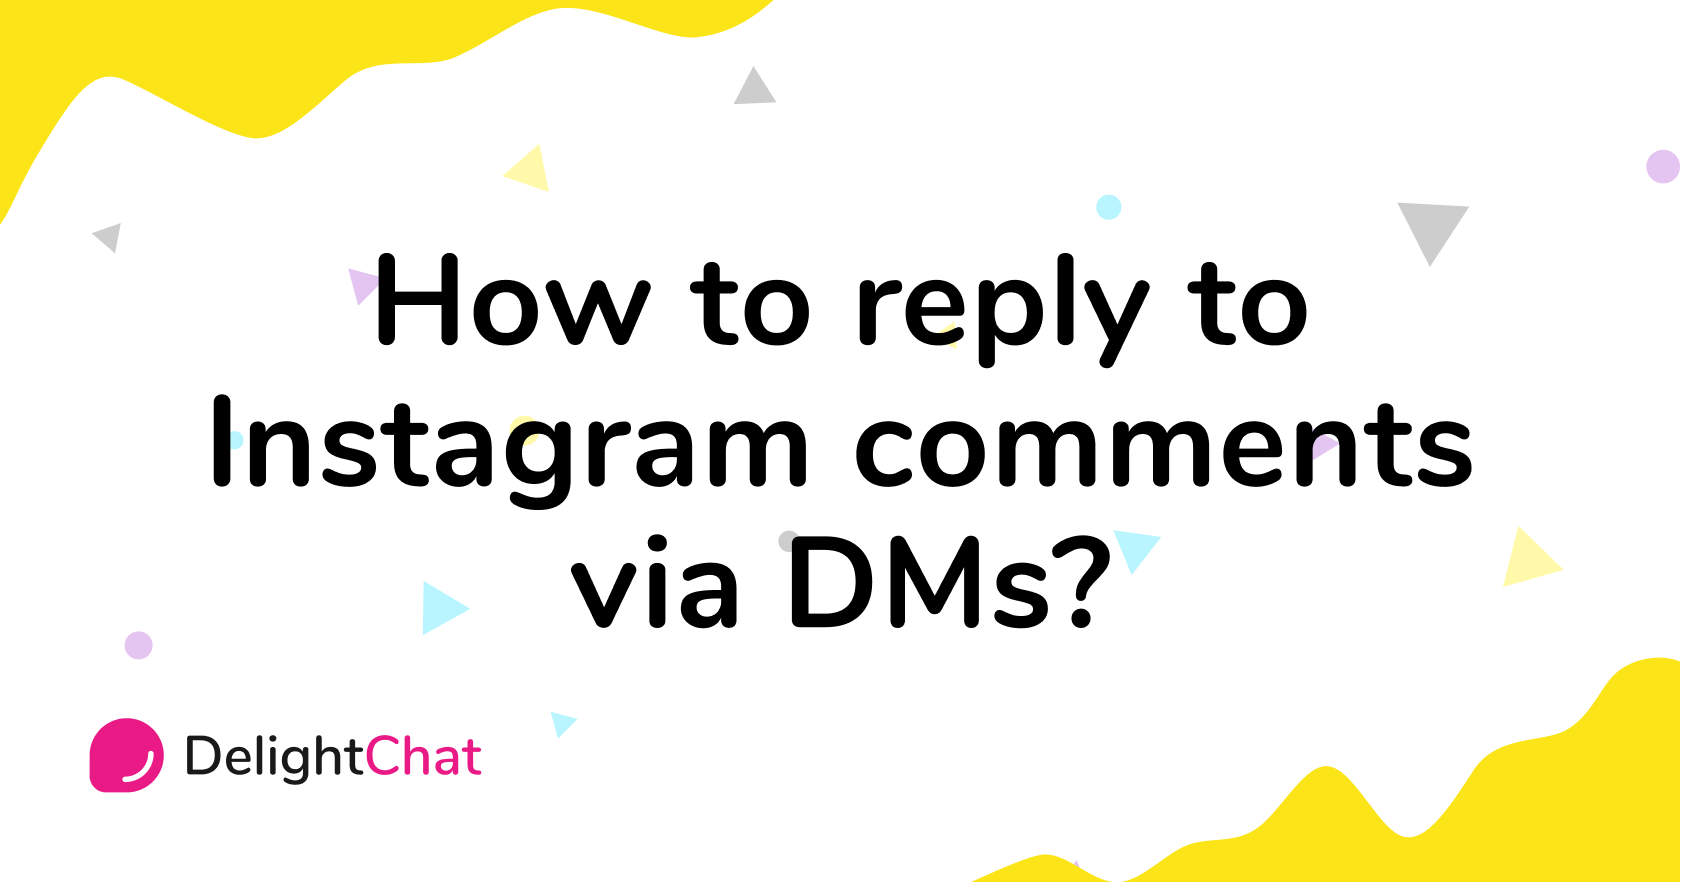 How to reply to Instagram comments via DMs?